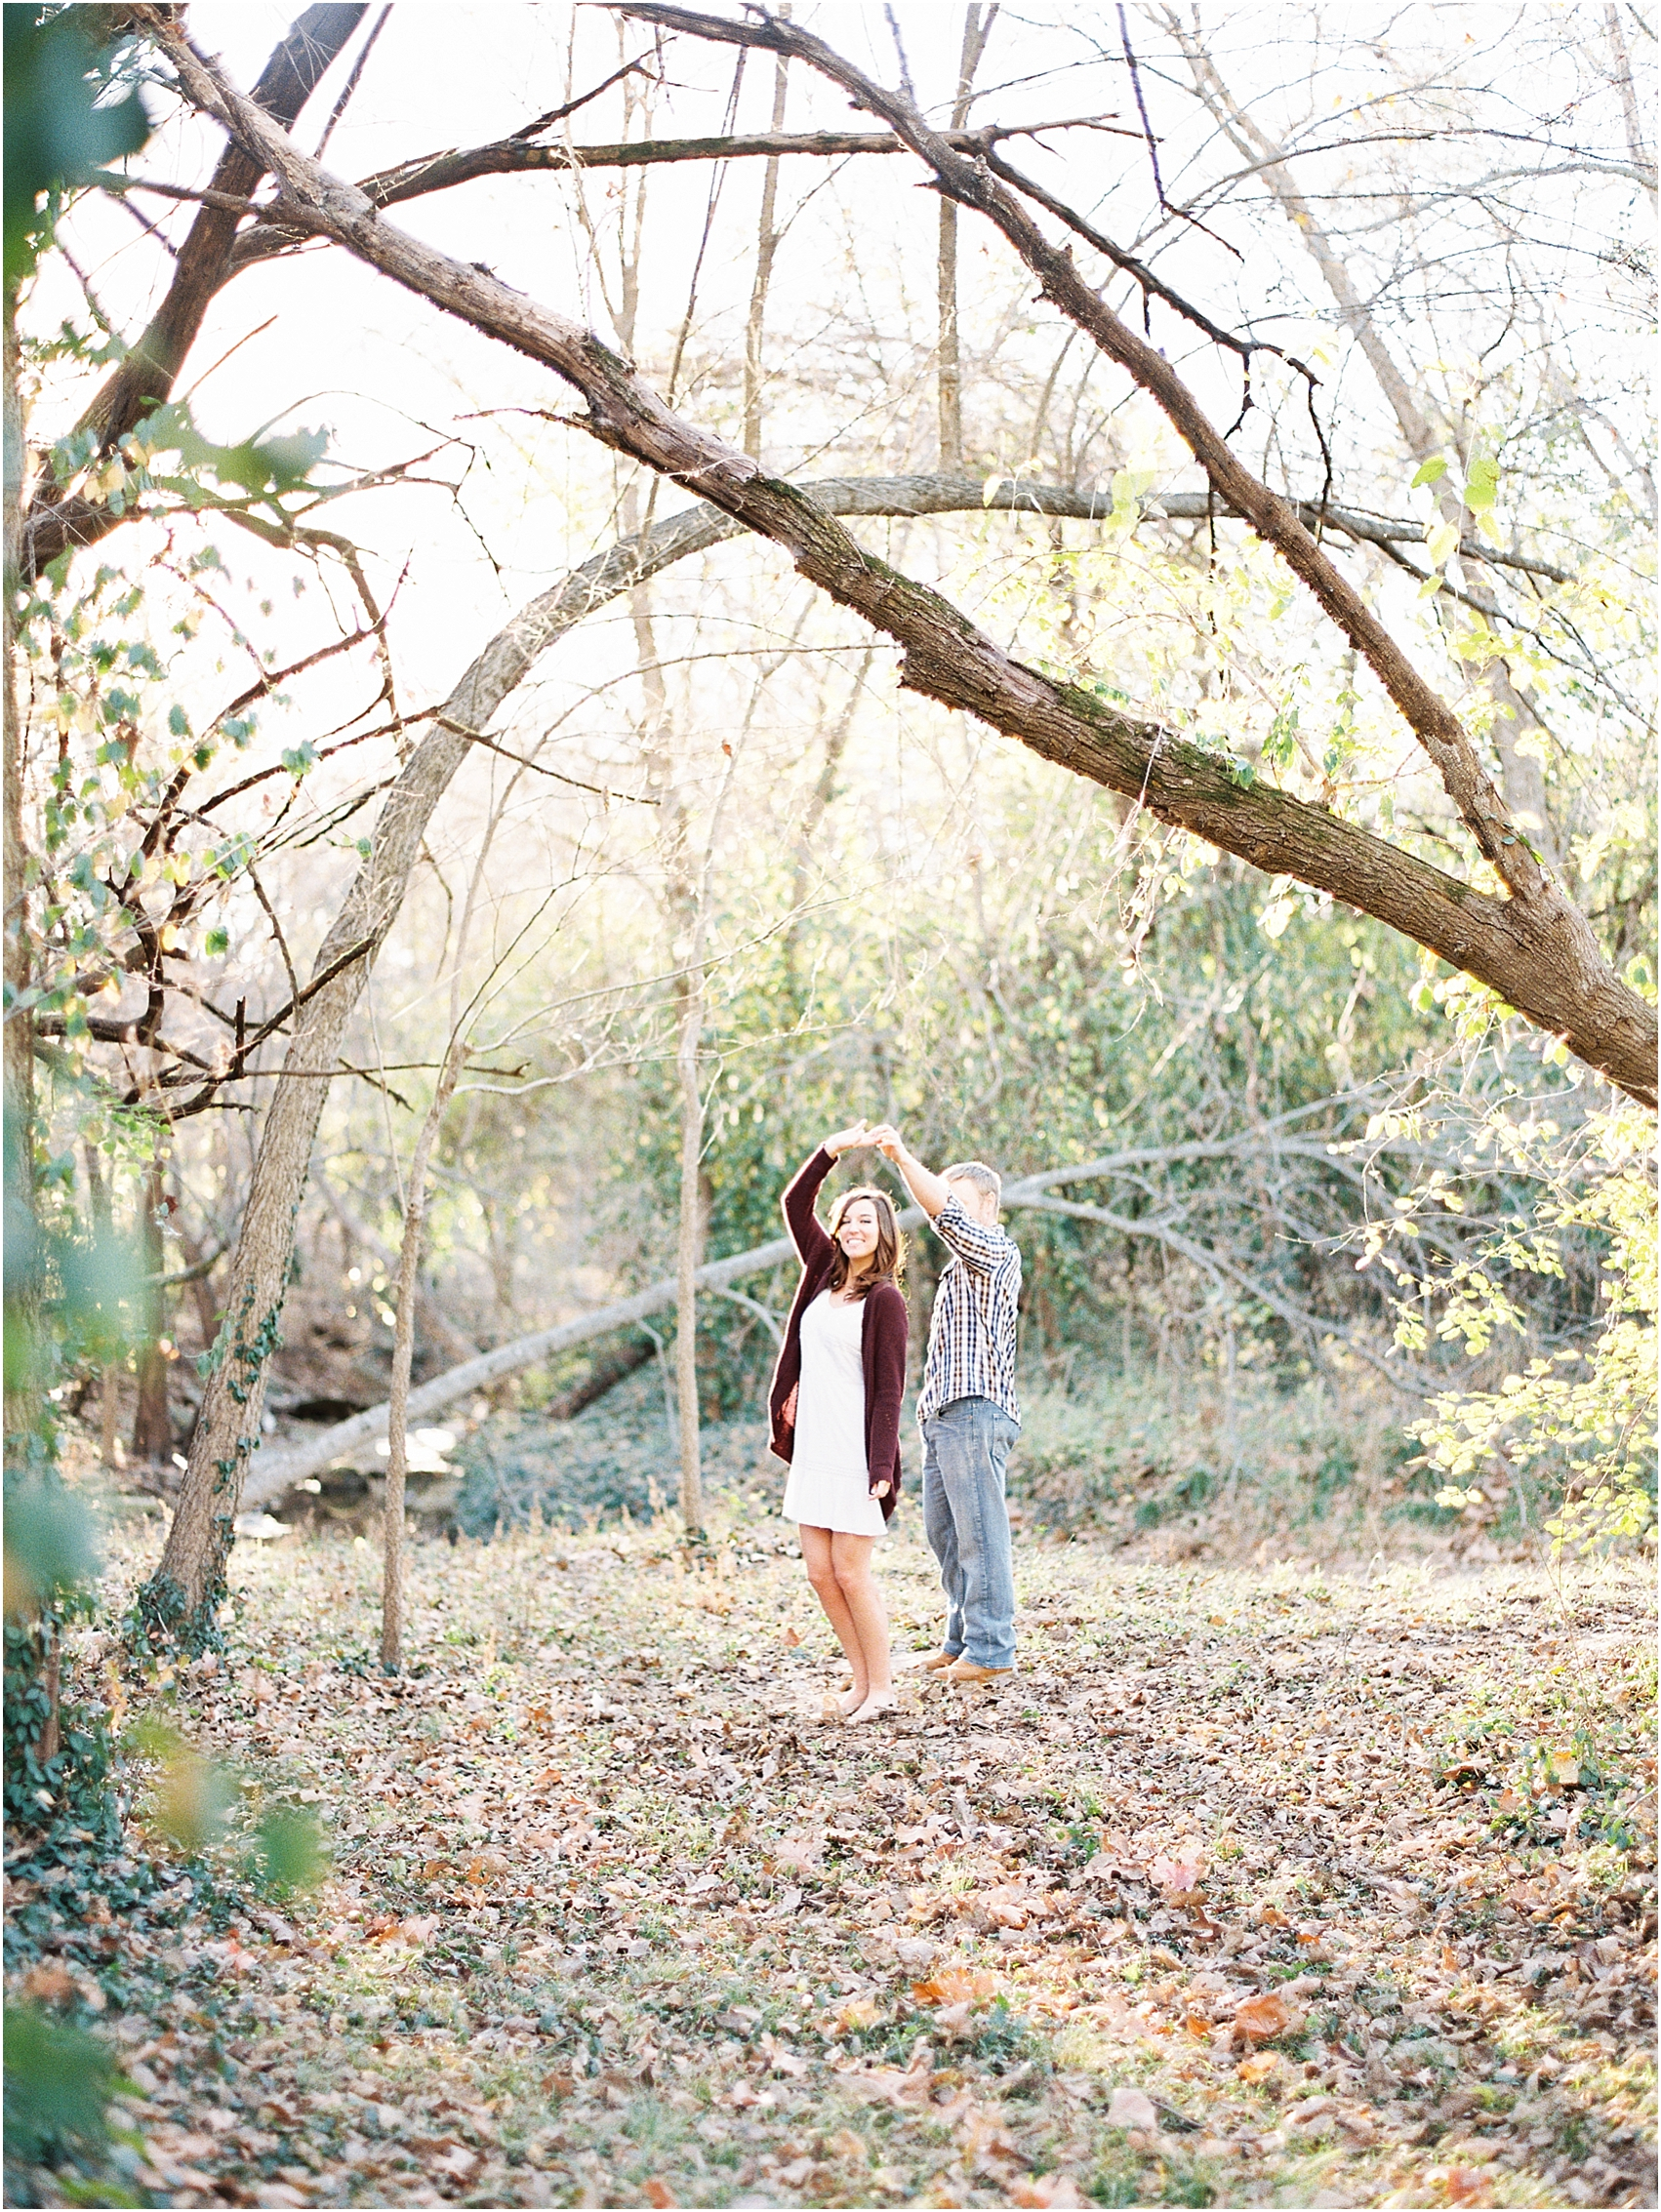 Bolivar MO Engagement Session by Jordan Brittley (www.jordanbrittley.com)